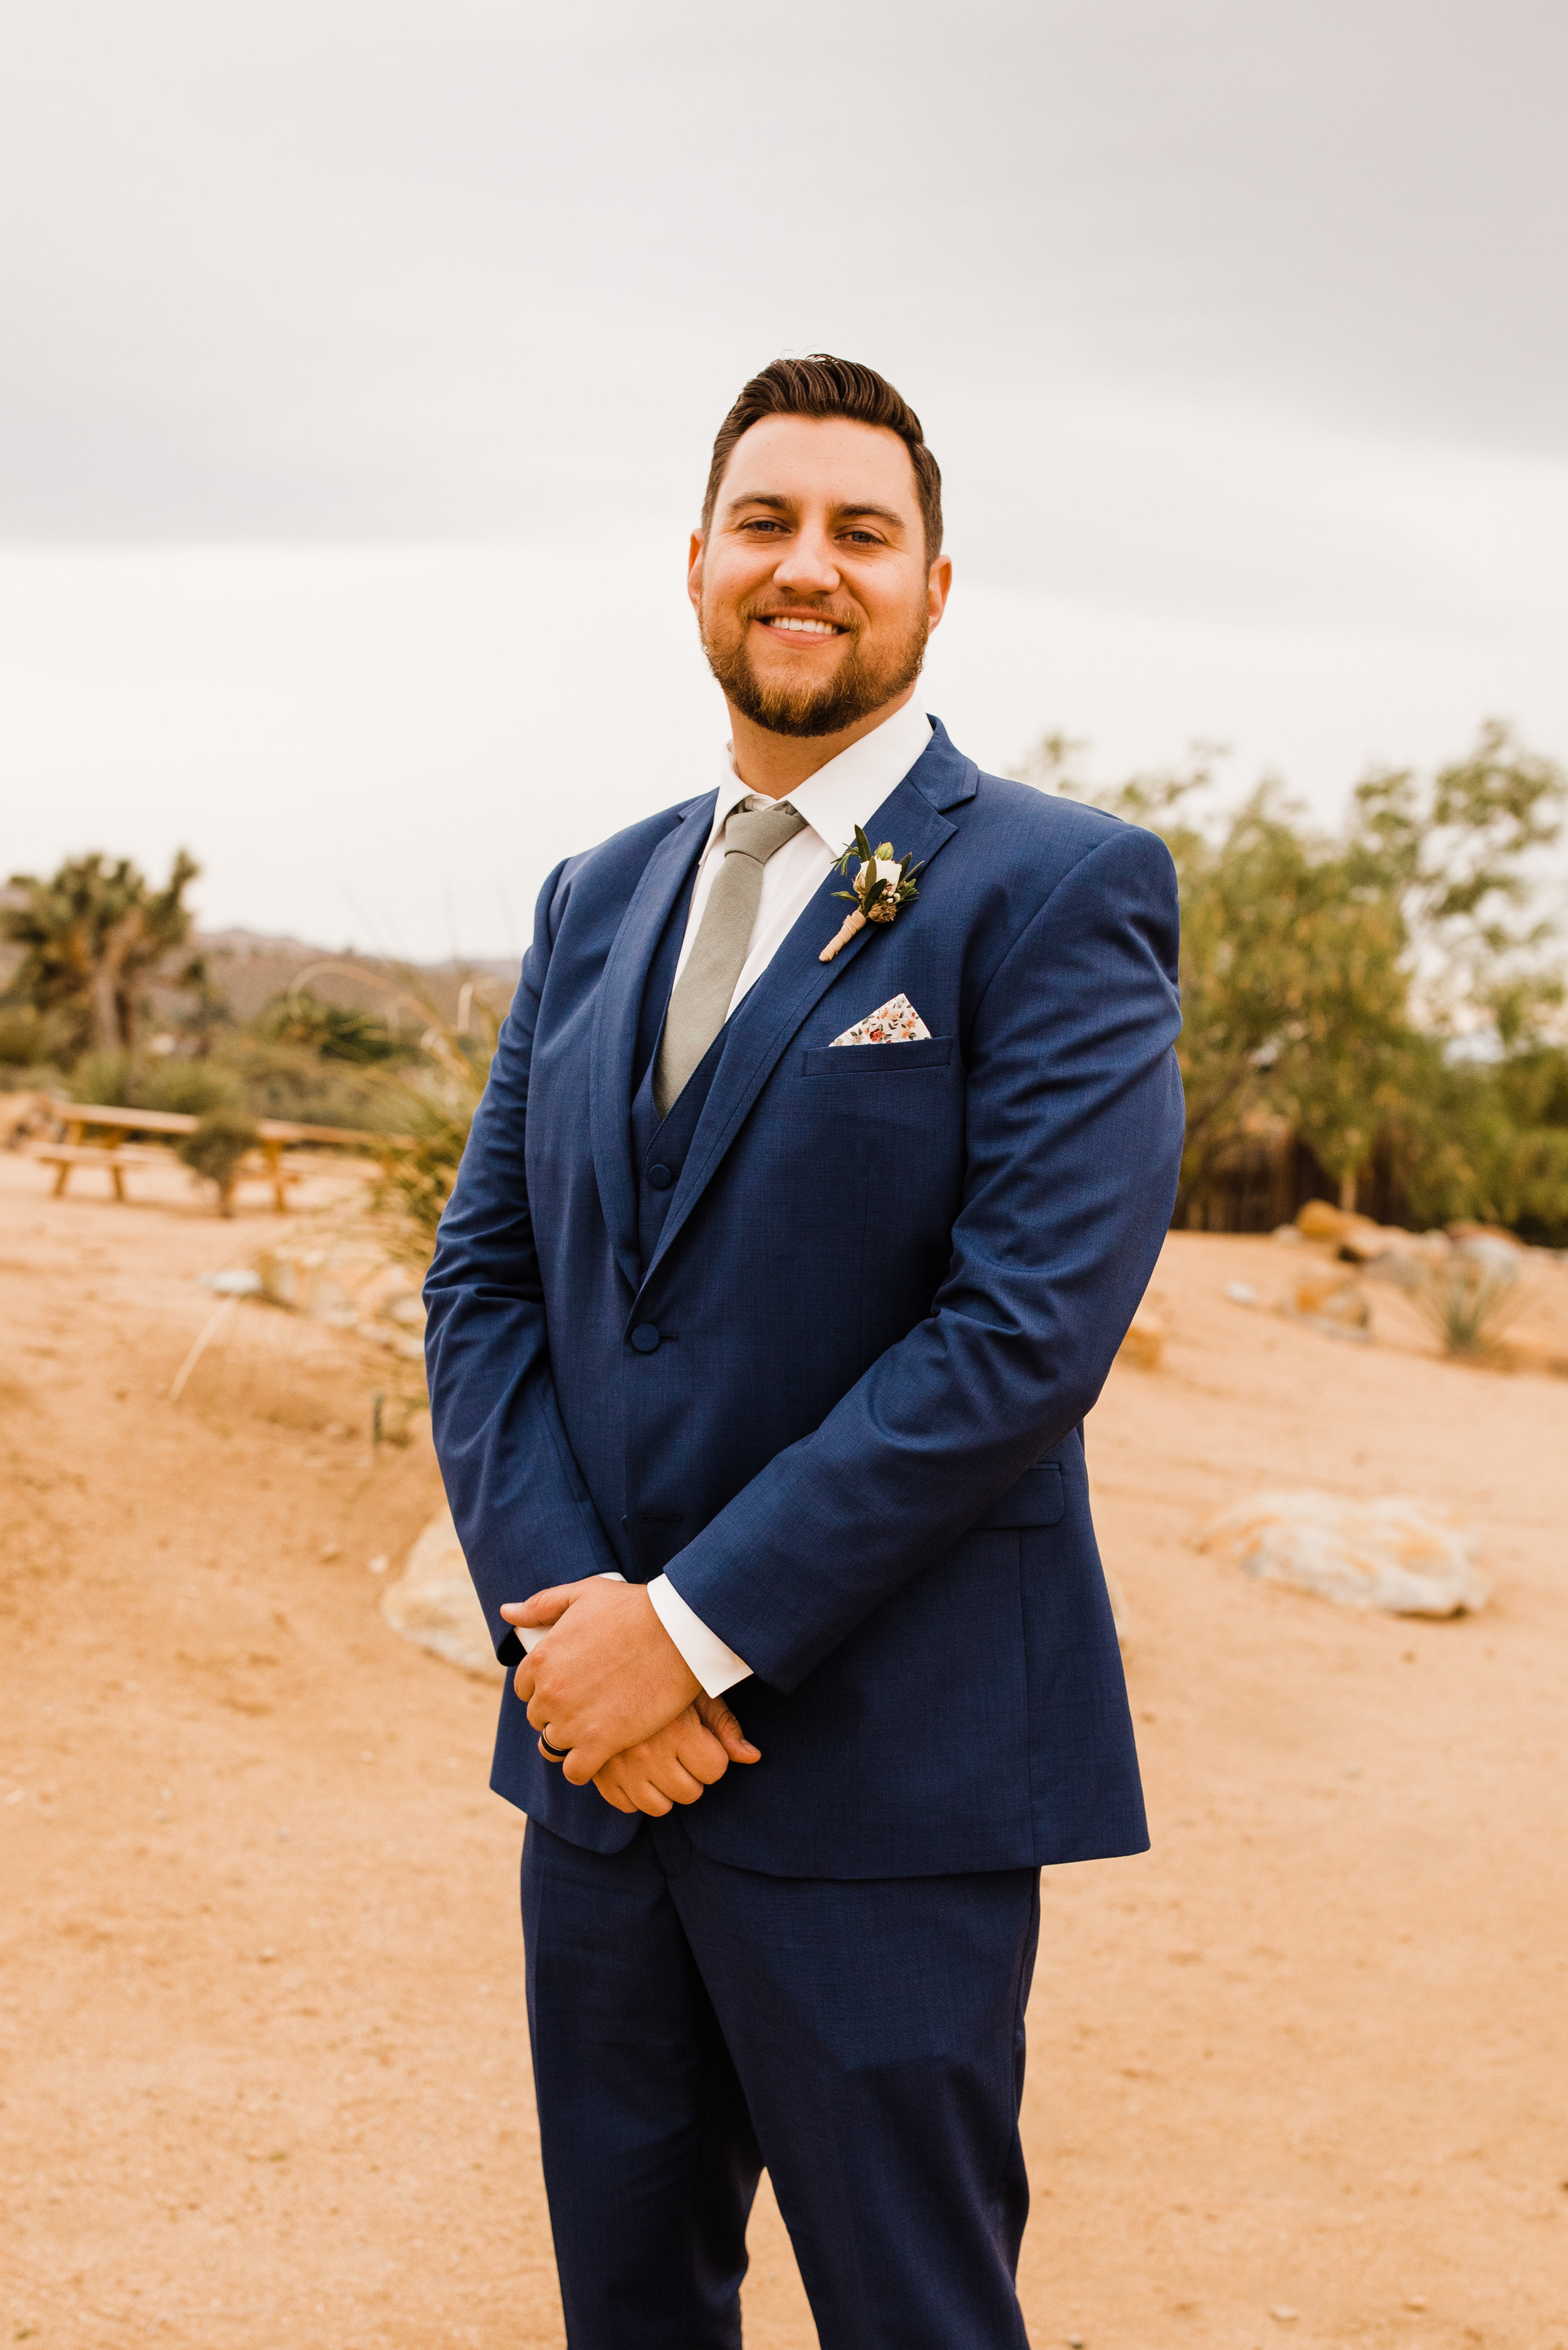 Groom in Blue Suit by Friar Tux at Tumbleweed Sanctuary Garden